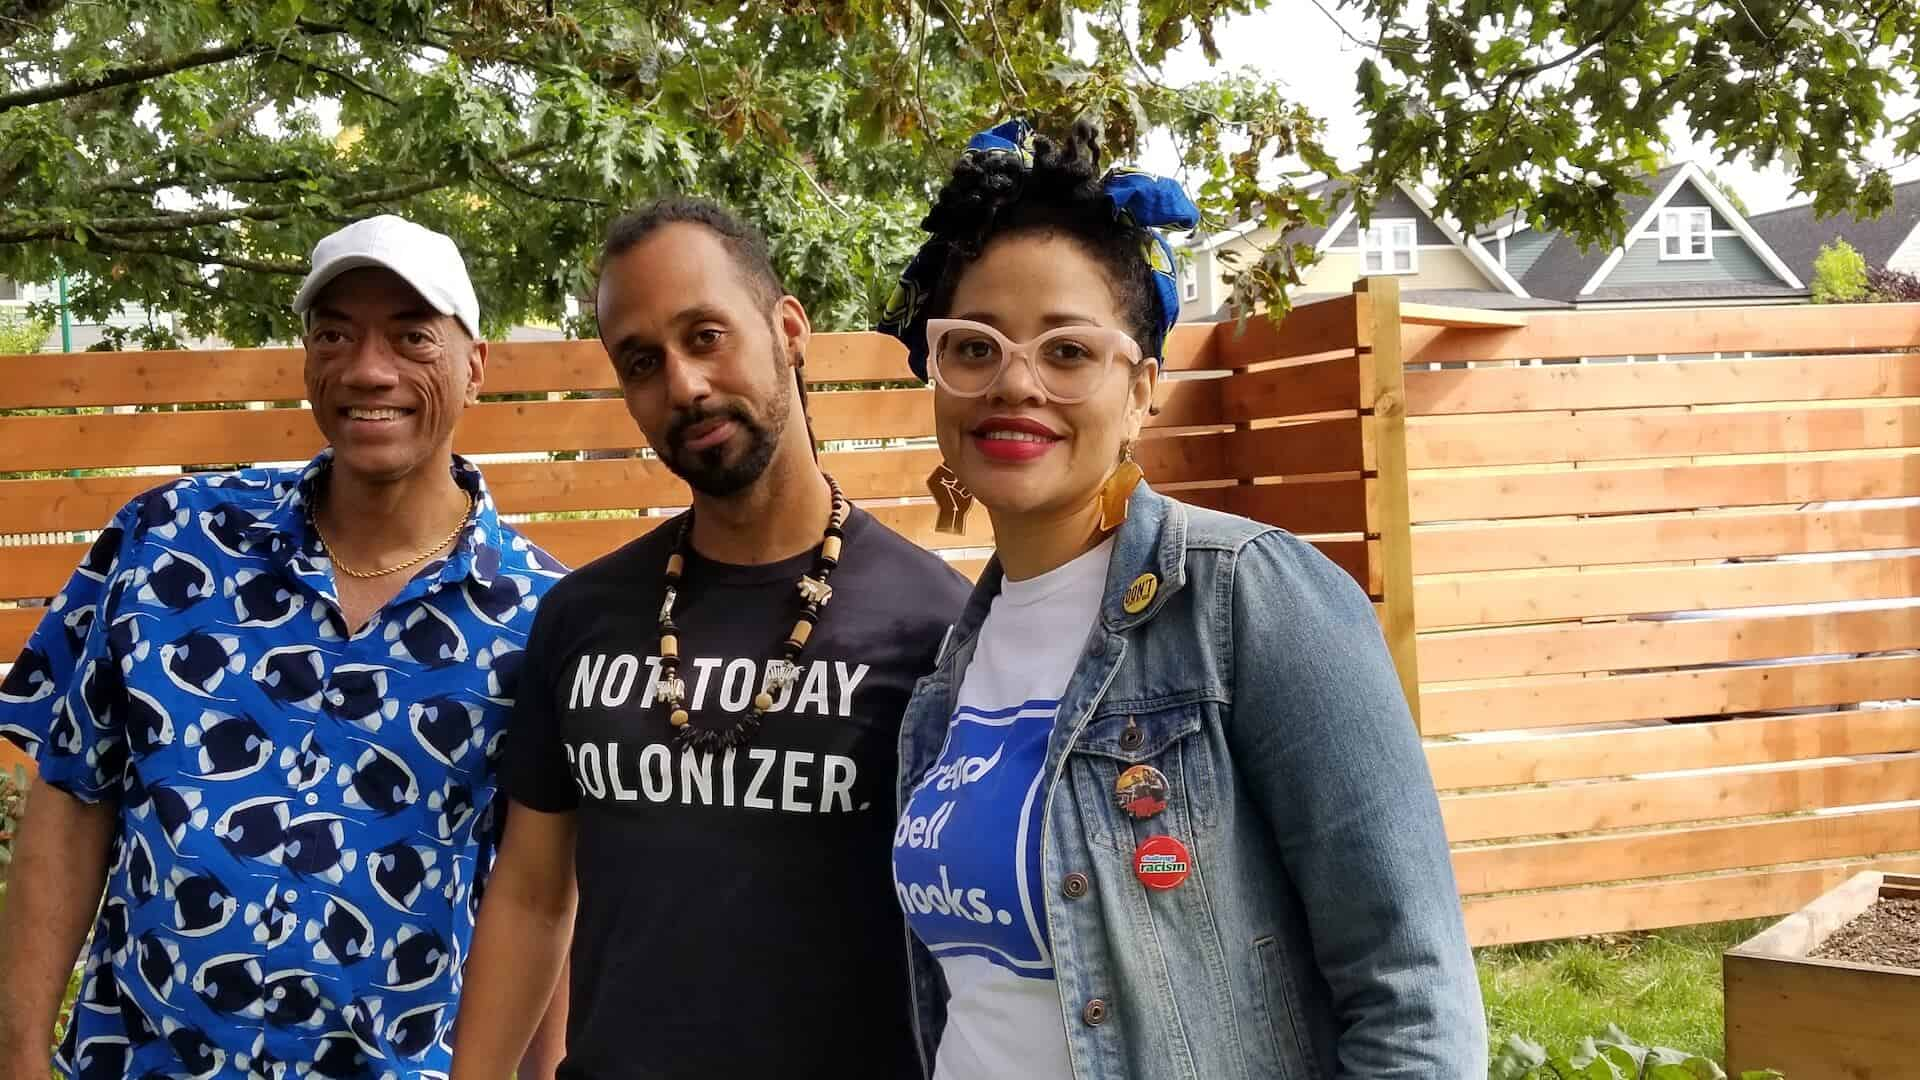 Summer Block Party: Rungh Readings With Hogan's Alley Society 5